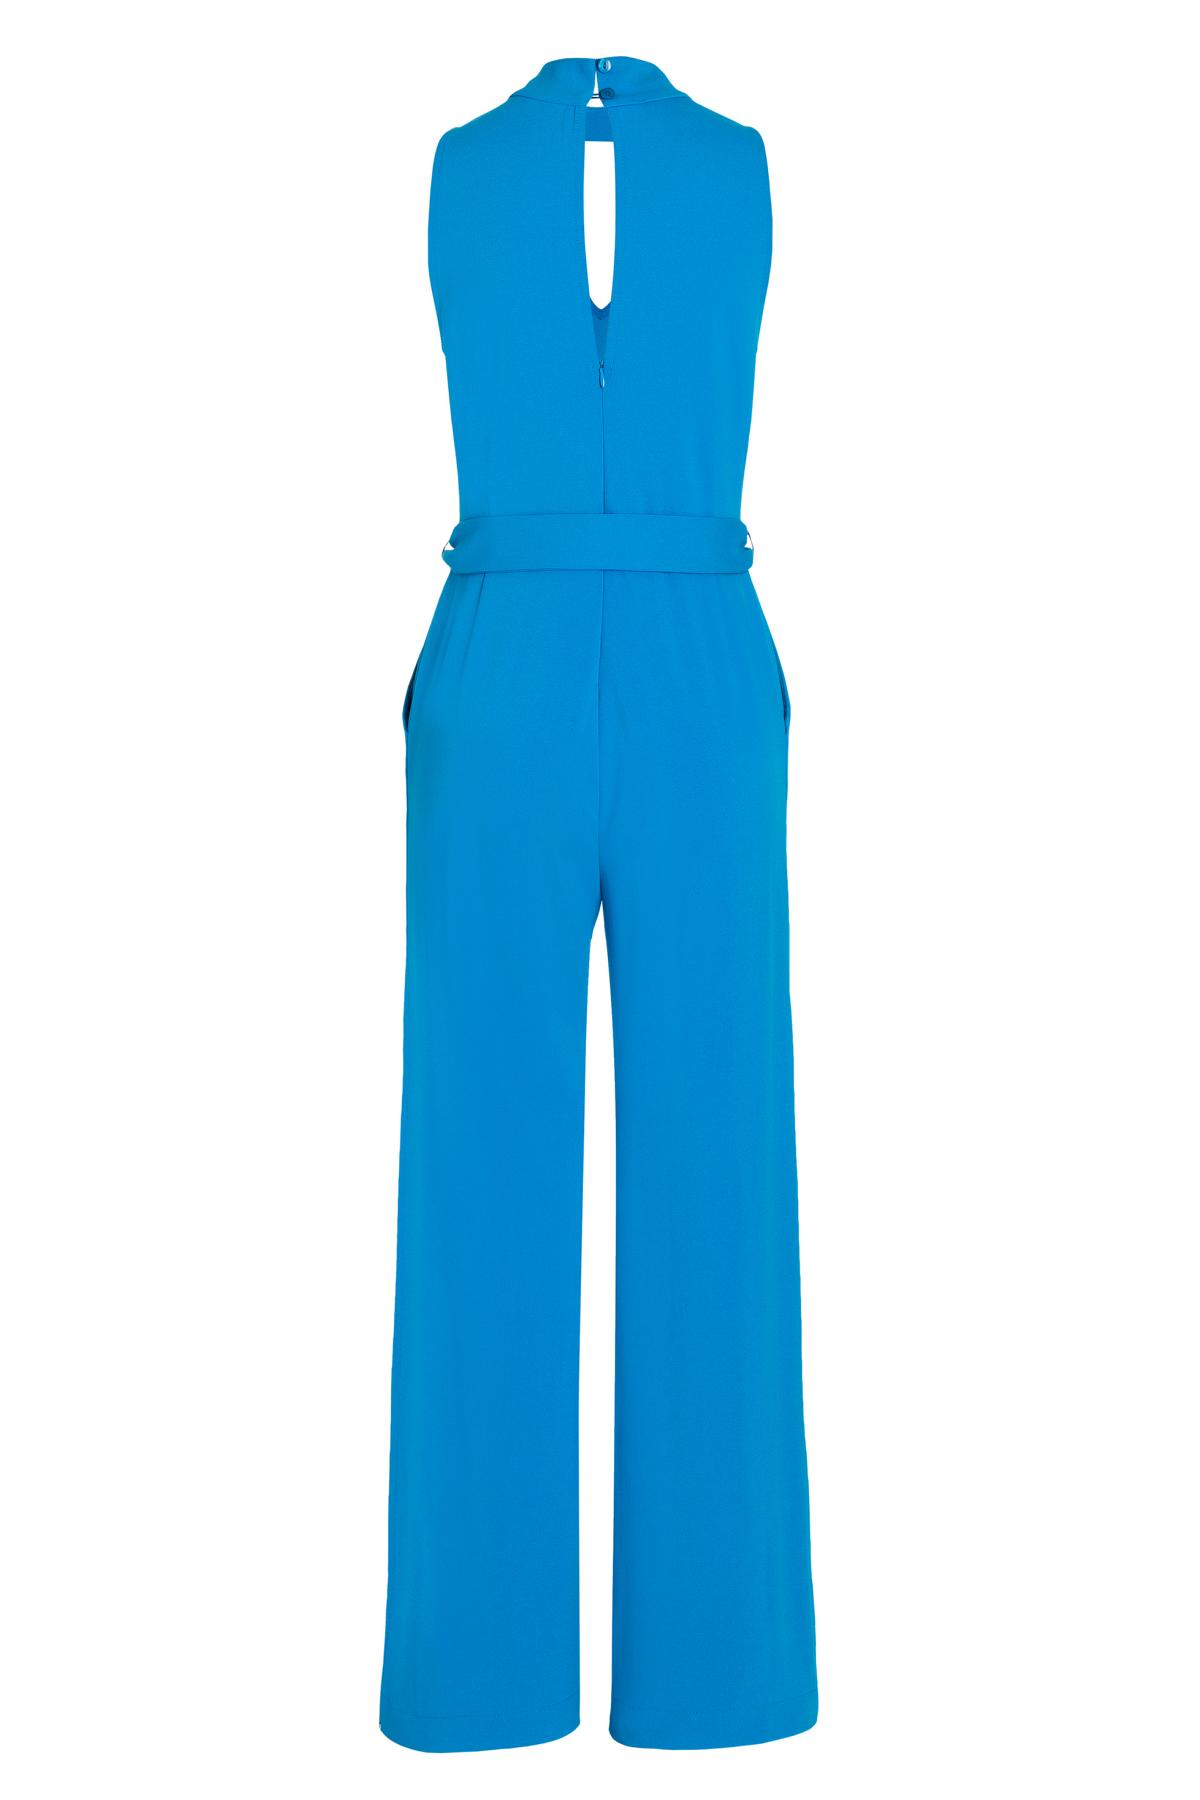 PRODUCT_PICTURE_PRE_7Ana Alcazar Jumpsuit Sawis Blau PRODUCT_PICTURE_SUF_7